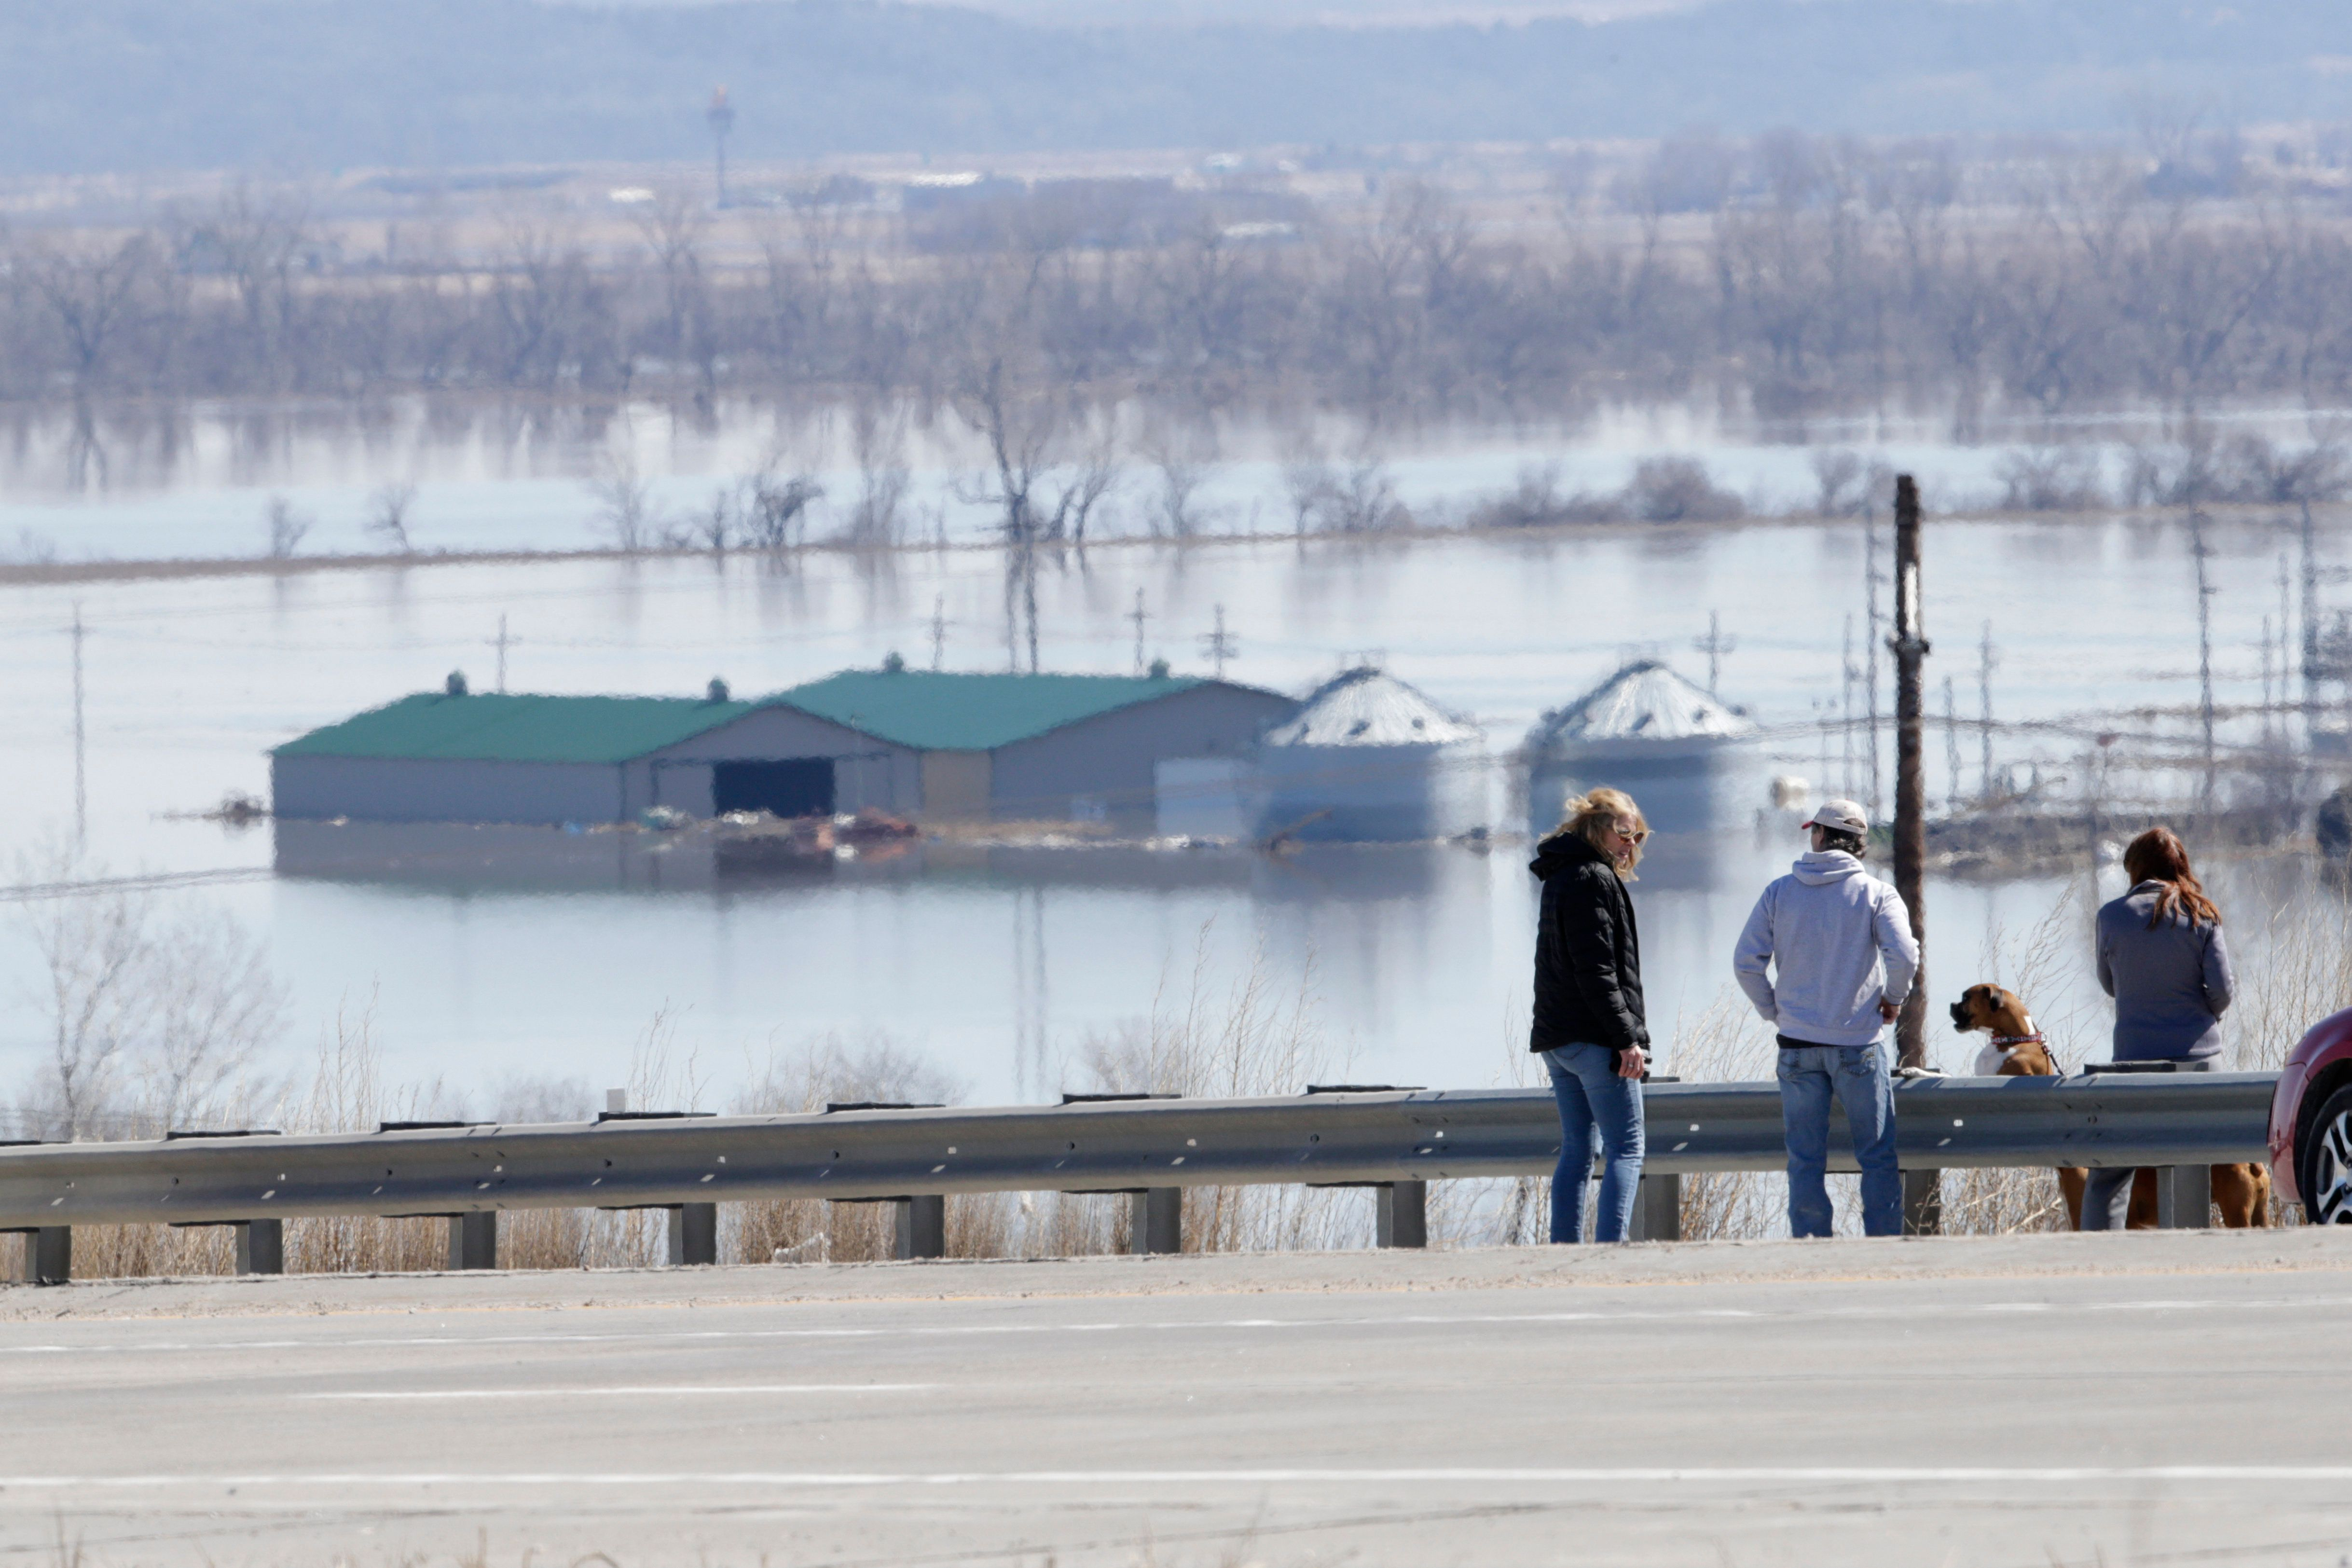 Travelers take in the overflowing Missouri River near Platteview, Neb., Saturday, March 16, 2019, as floodwaters from the Missouri River cover highways and surrounding farmland. Thousands of people have been urged to evacuate along eastern Nebraska rivers as a massive late-winter storm has pushed streams and rivers out of their banks throughout the Midwest. (AP Photo/Nati Harnik)